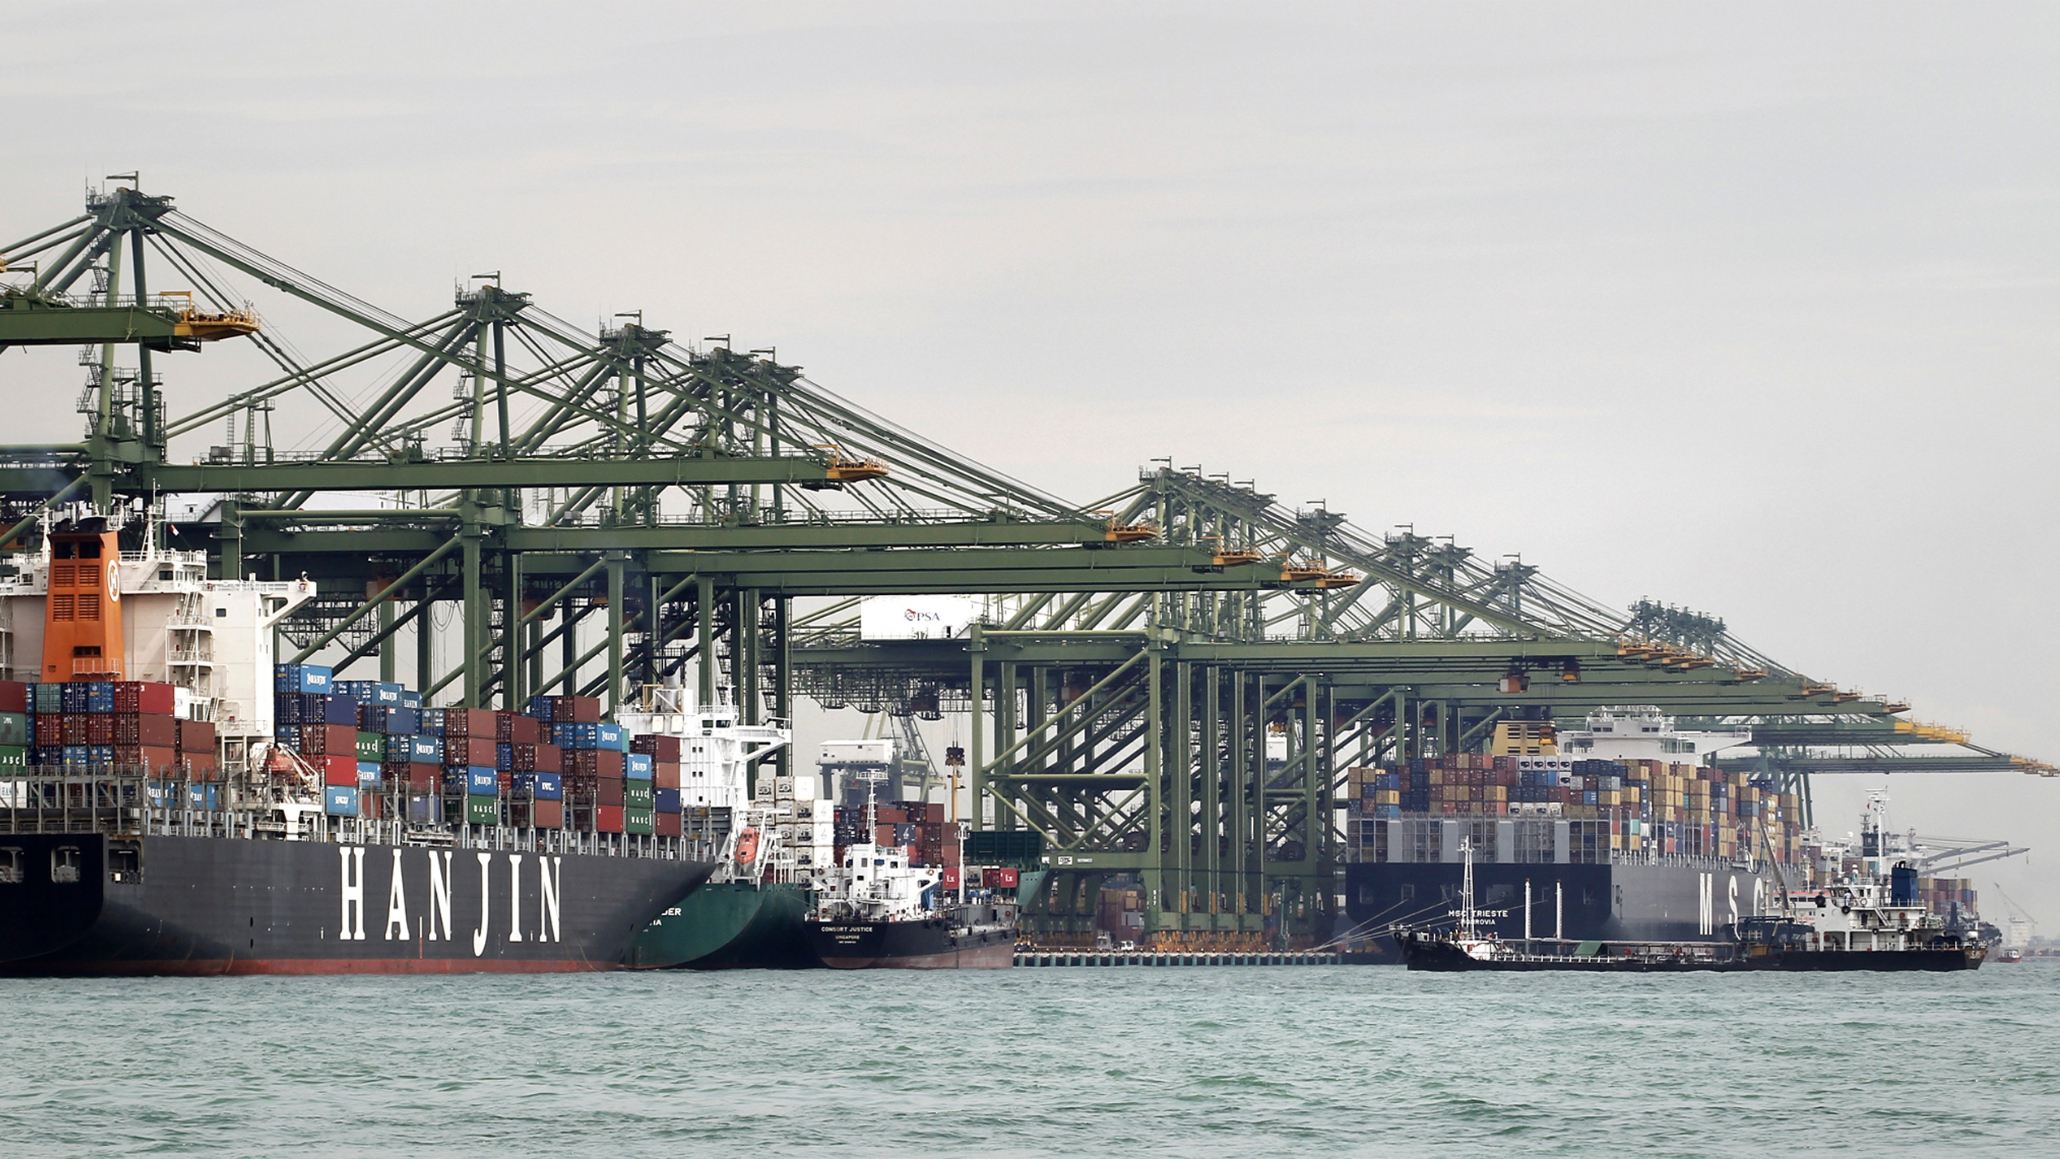 Hanjin shipping line container ship docked at PSA, Singapore, on 4 December 2012. (Singapore Press via AP Images